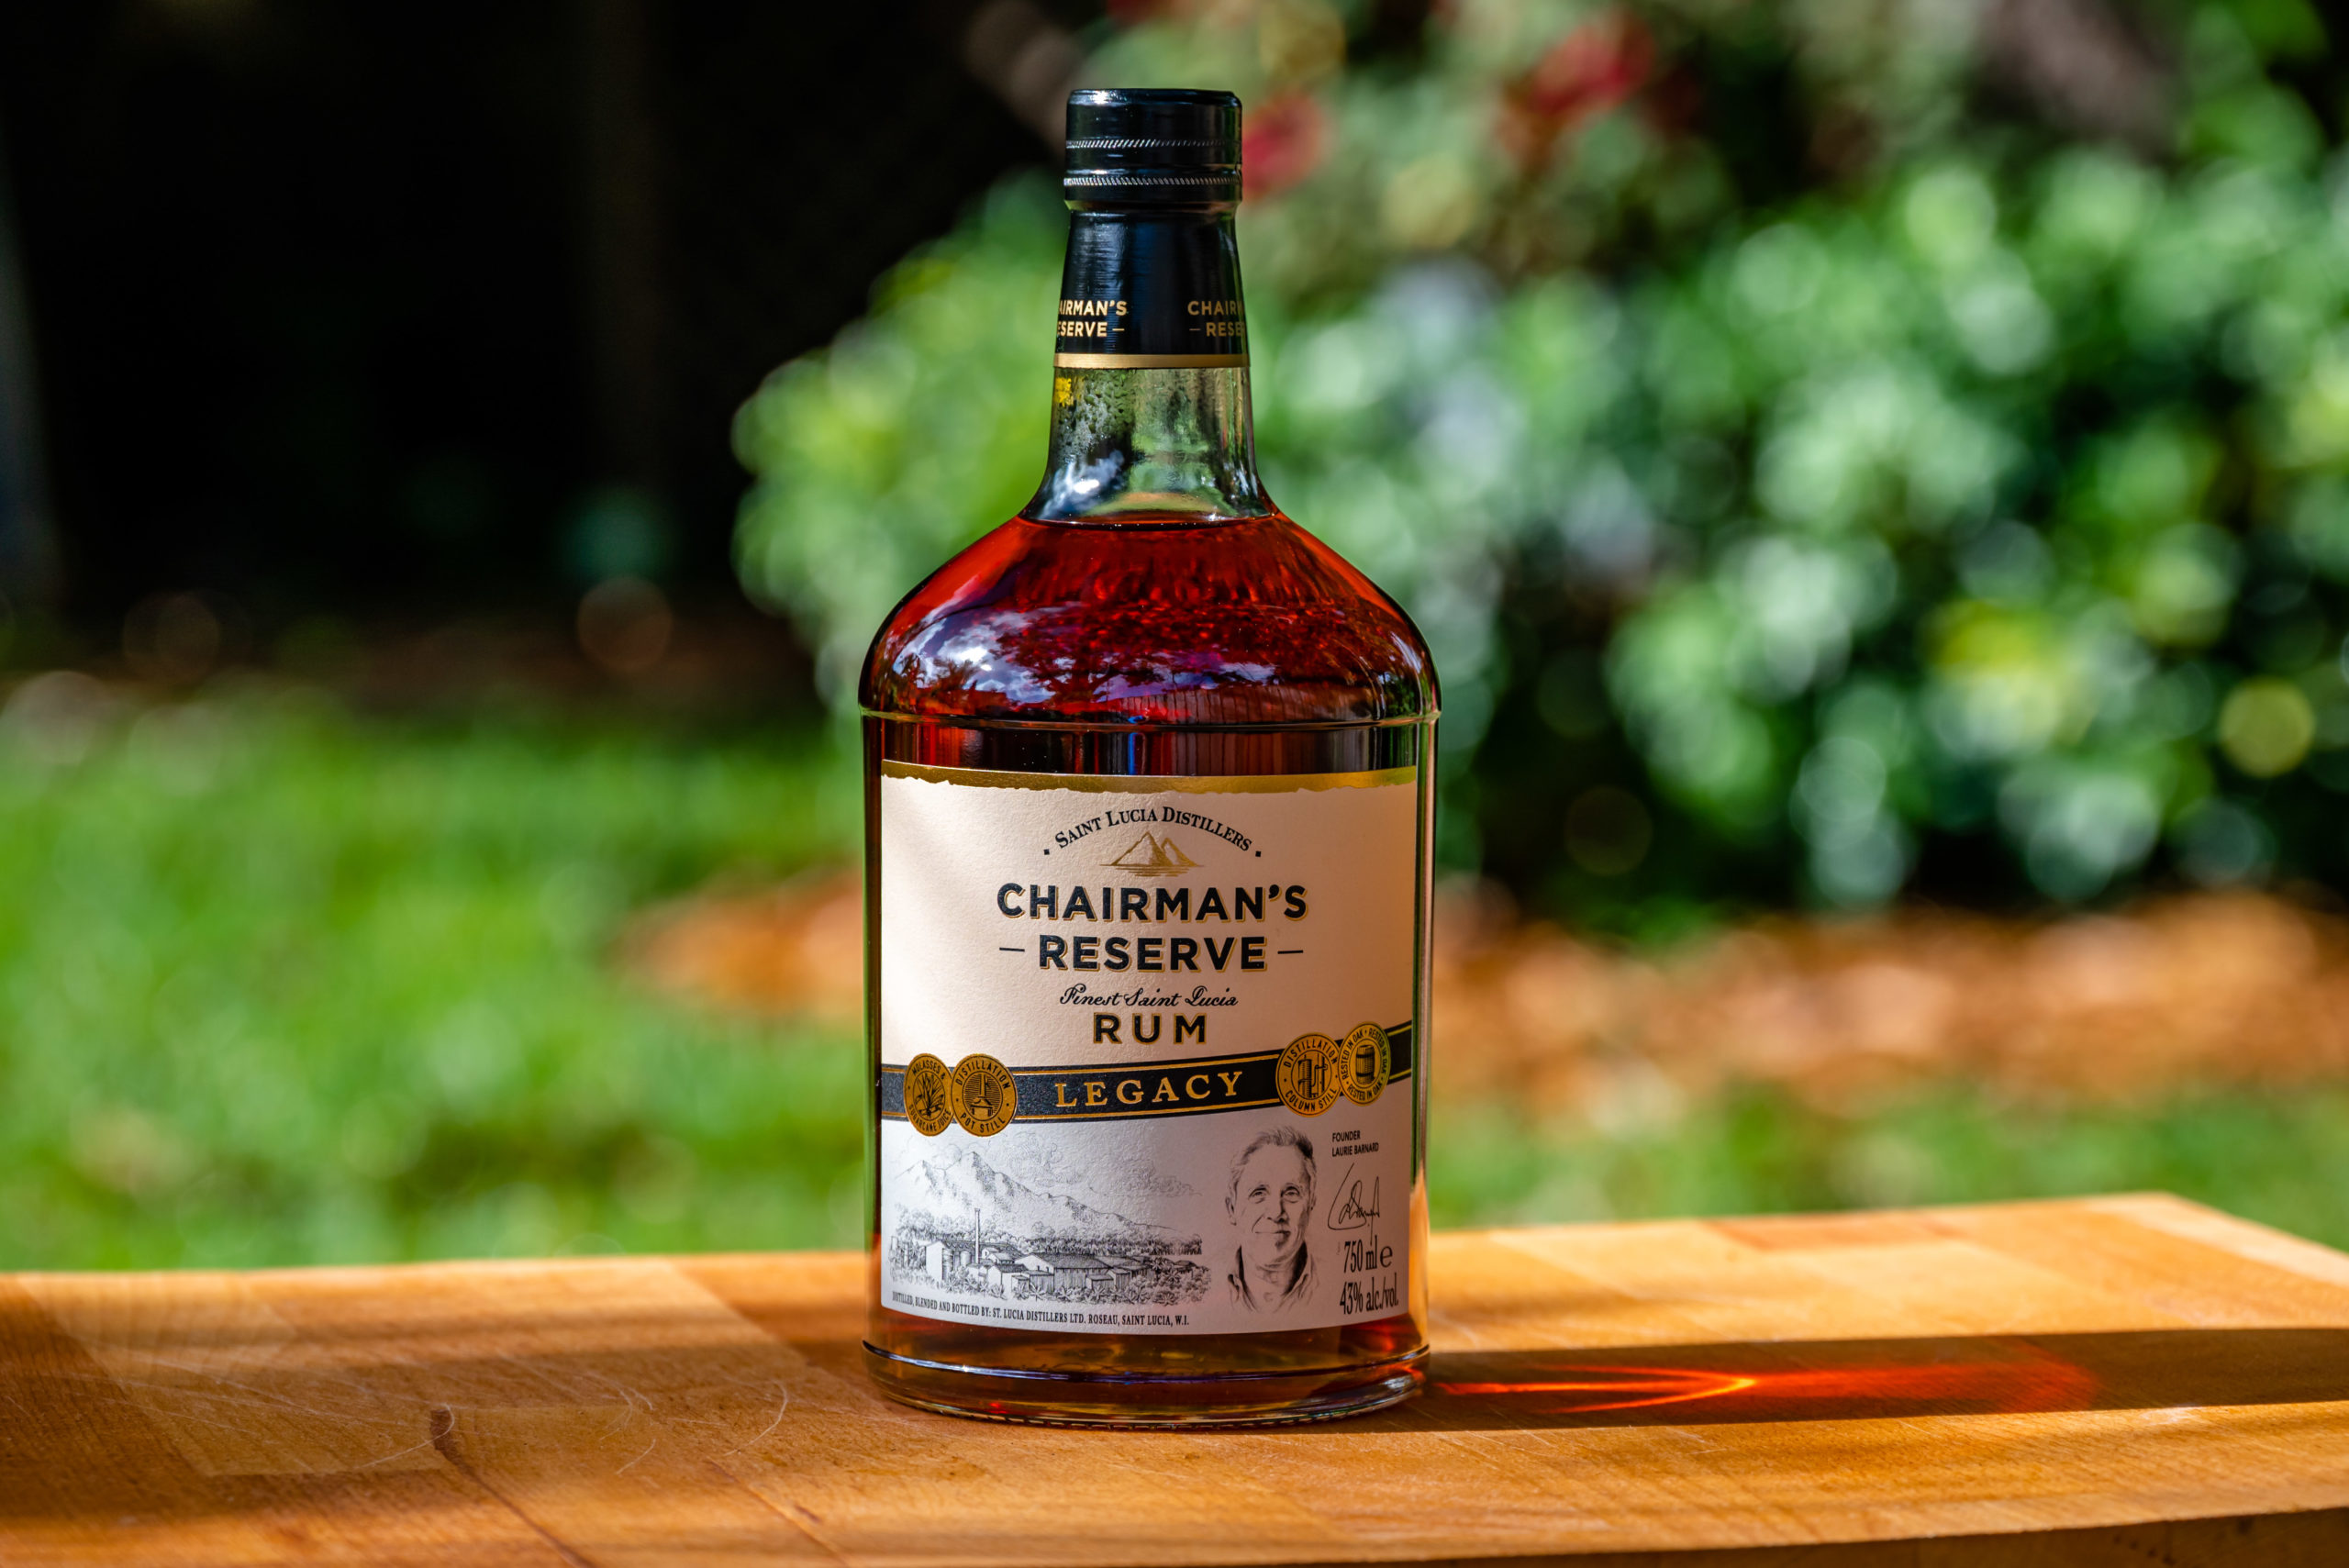 Chairman's Reserve Legacy Rum